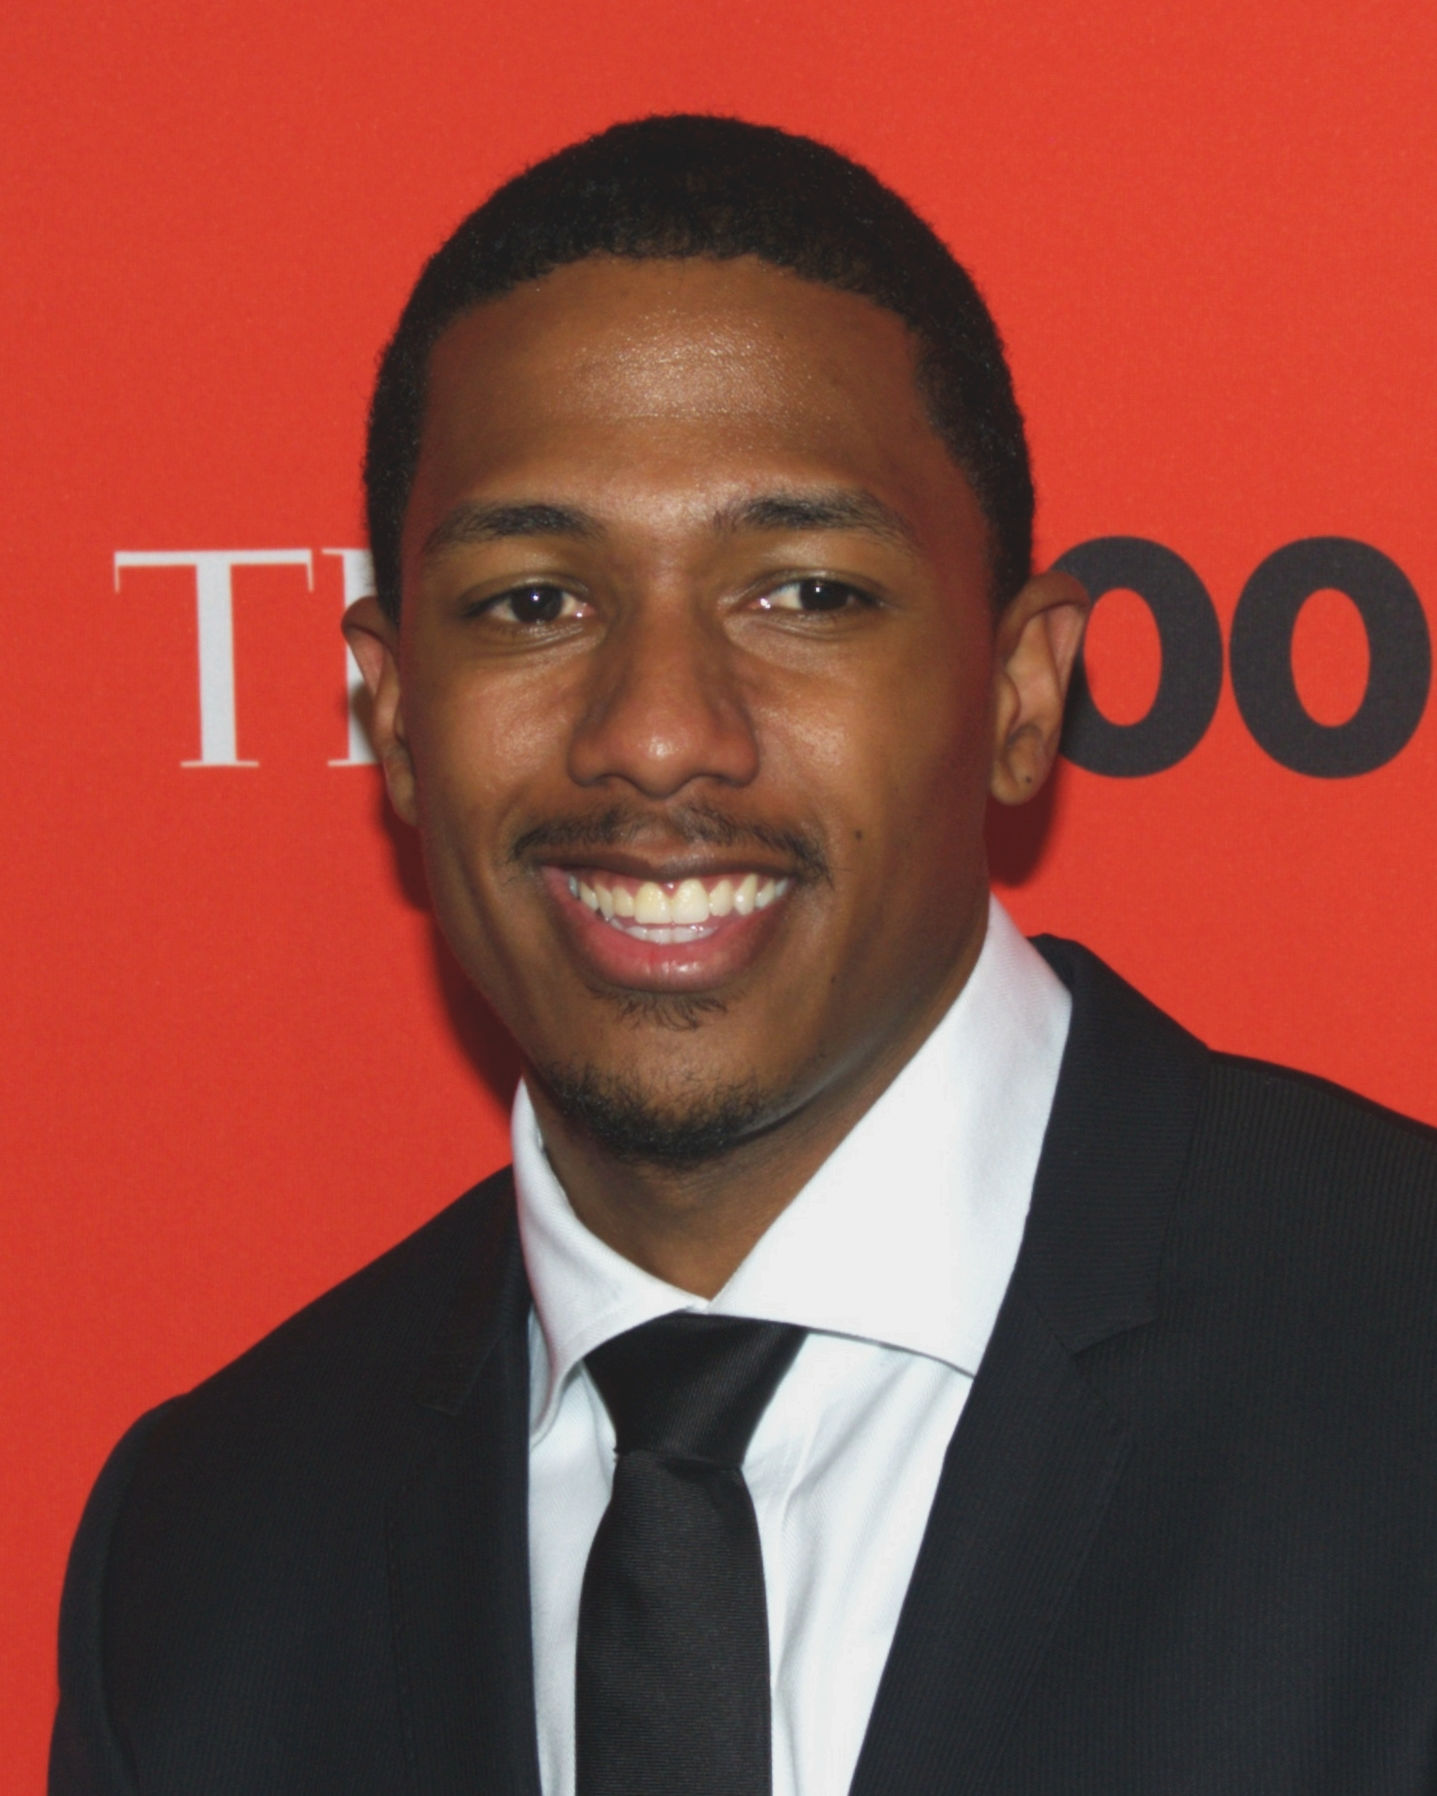 Photo of Nick Cannon: Rapper, comedian, record producer, actor, television host